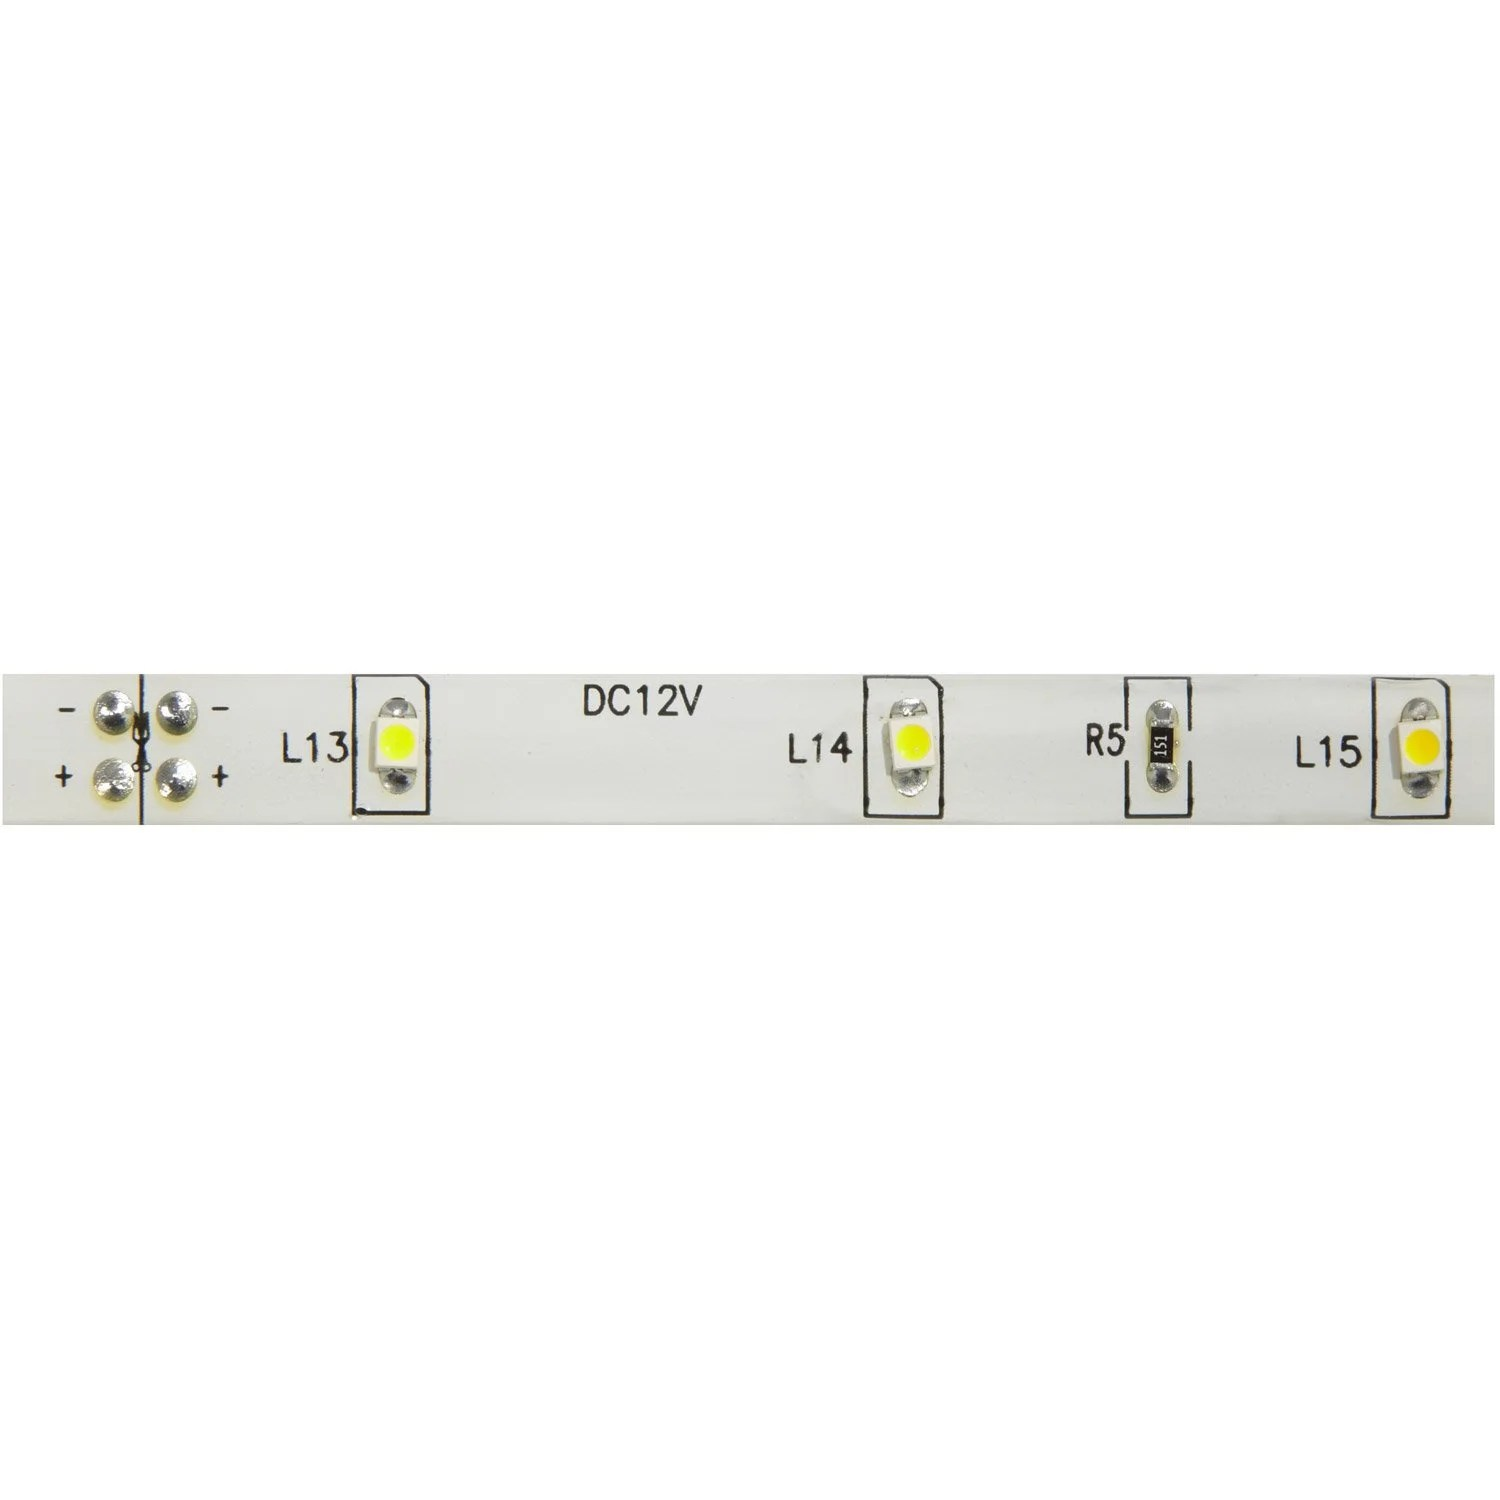 Ampoule Led Multicolore Leroy Merlin Ruban Led Salle De Bains 1m Multicolore Ip67 Stripled